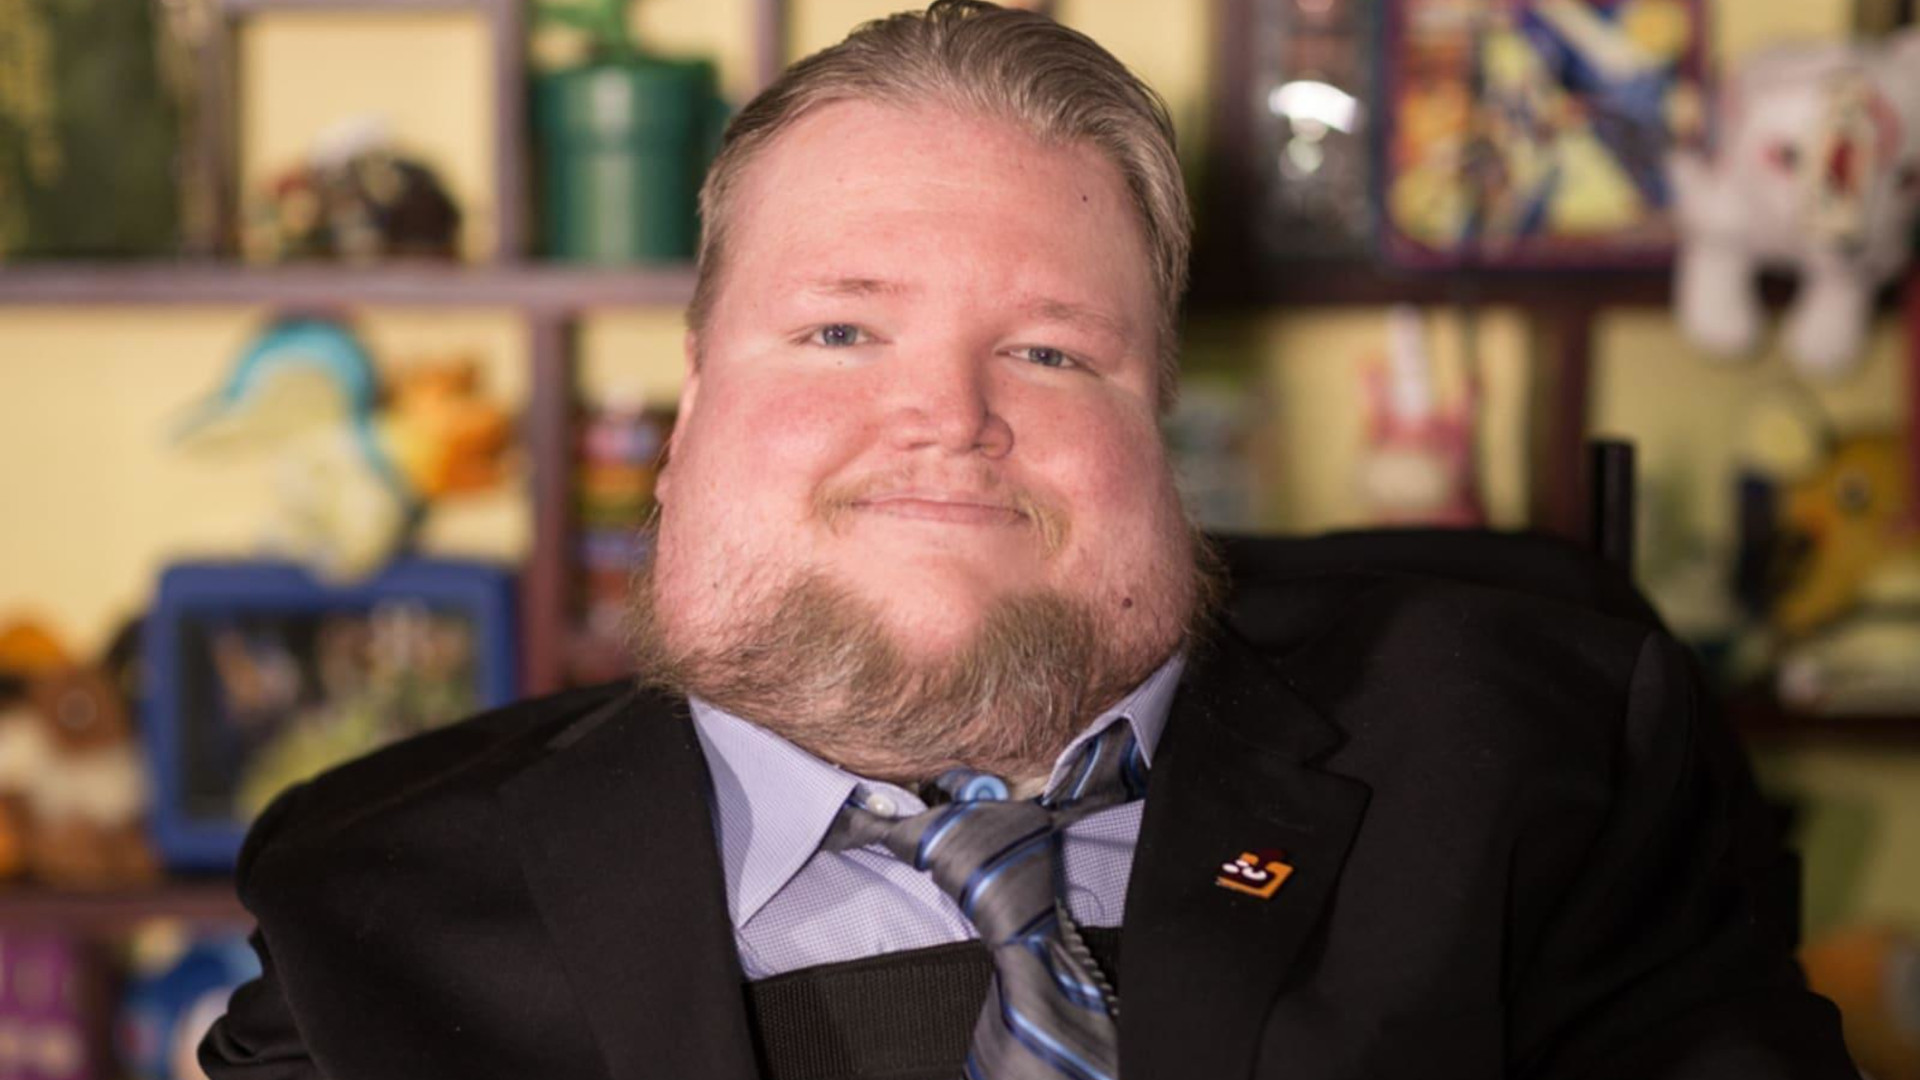 Front facing photograph of Steve Spohn, COO of AbleGamers